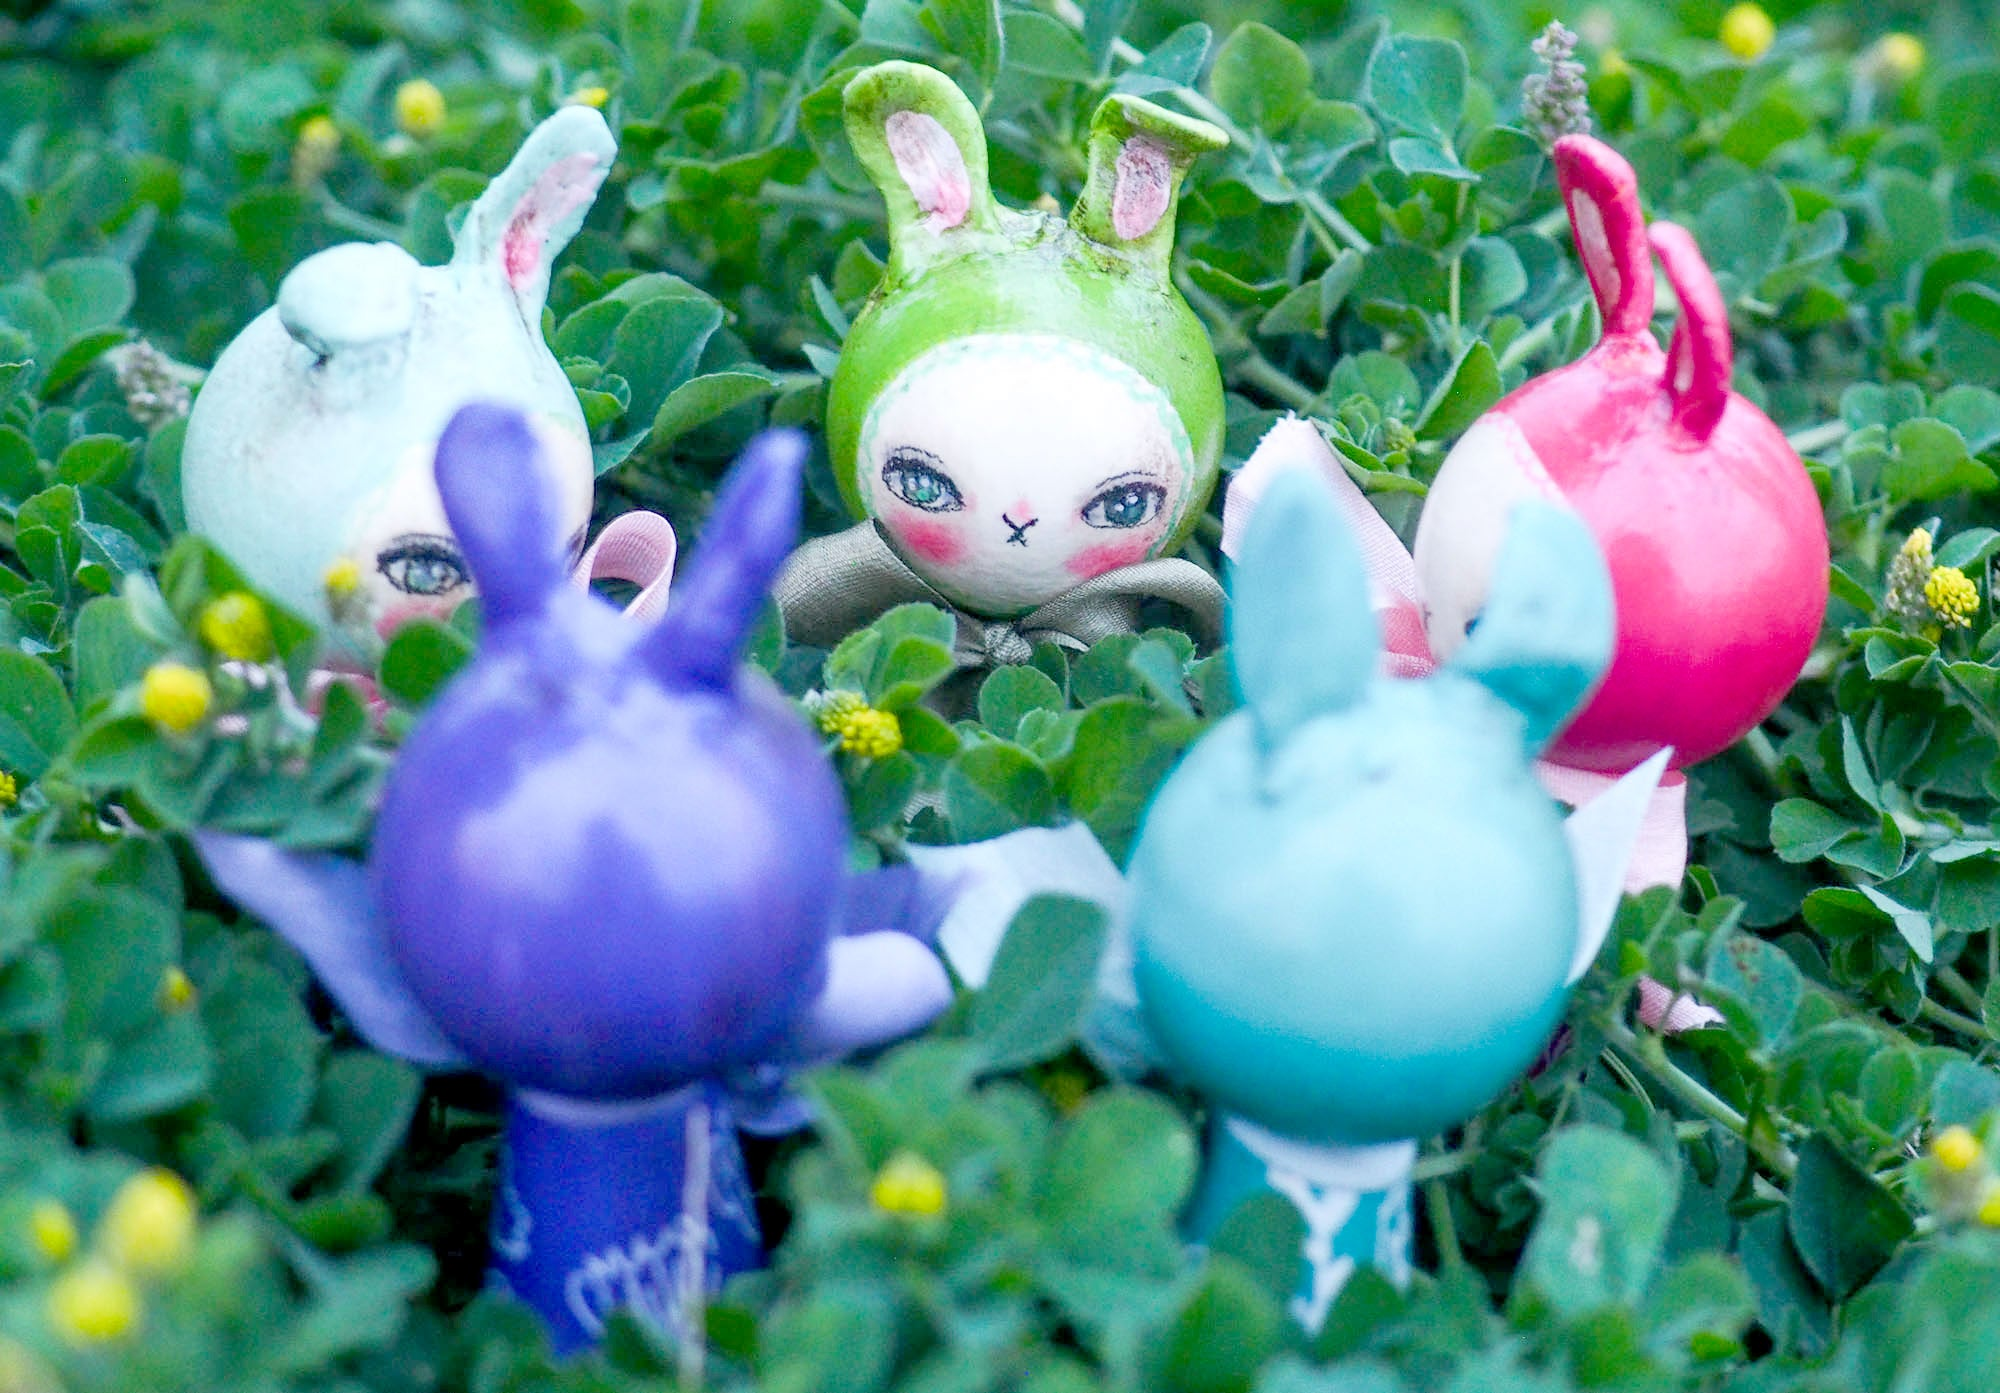 BLUEBELL. A handmade kokeshi easter bunny rabbit doll by Danita., Miniature Dolls by Danita Art